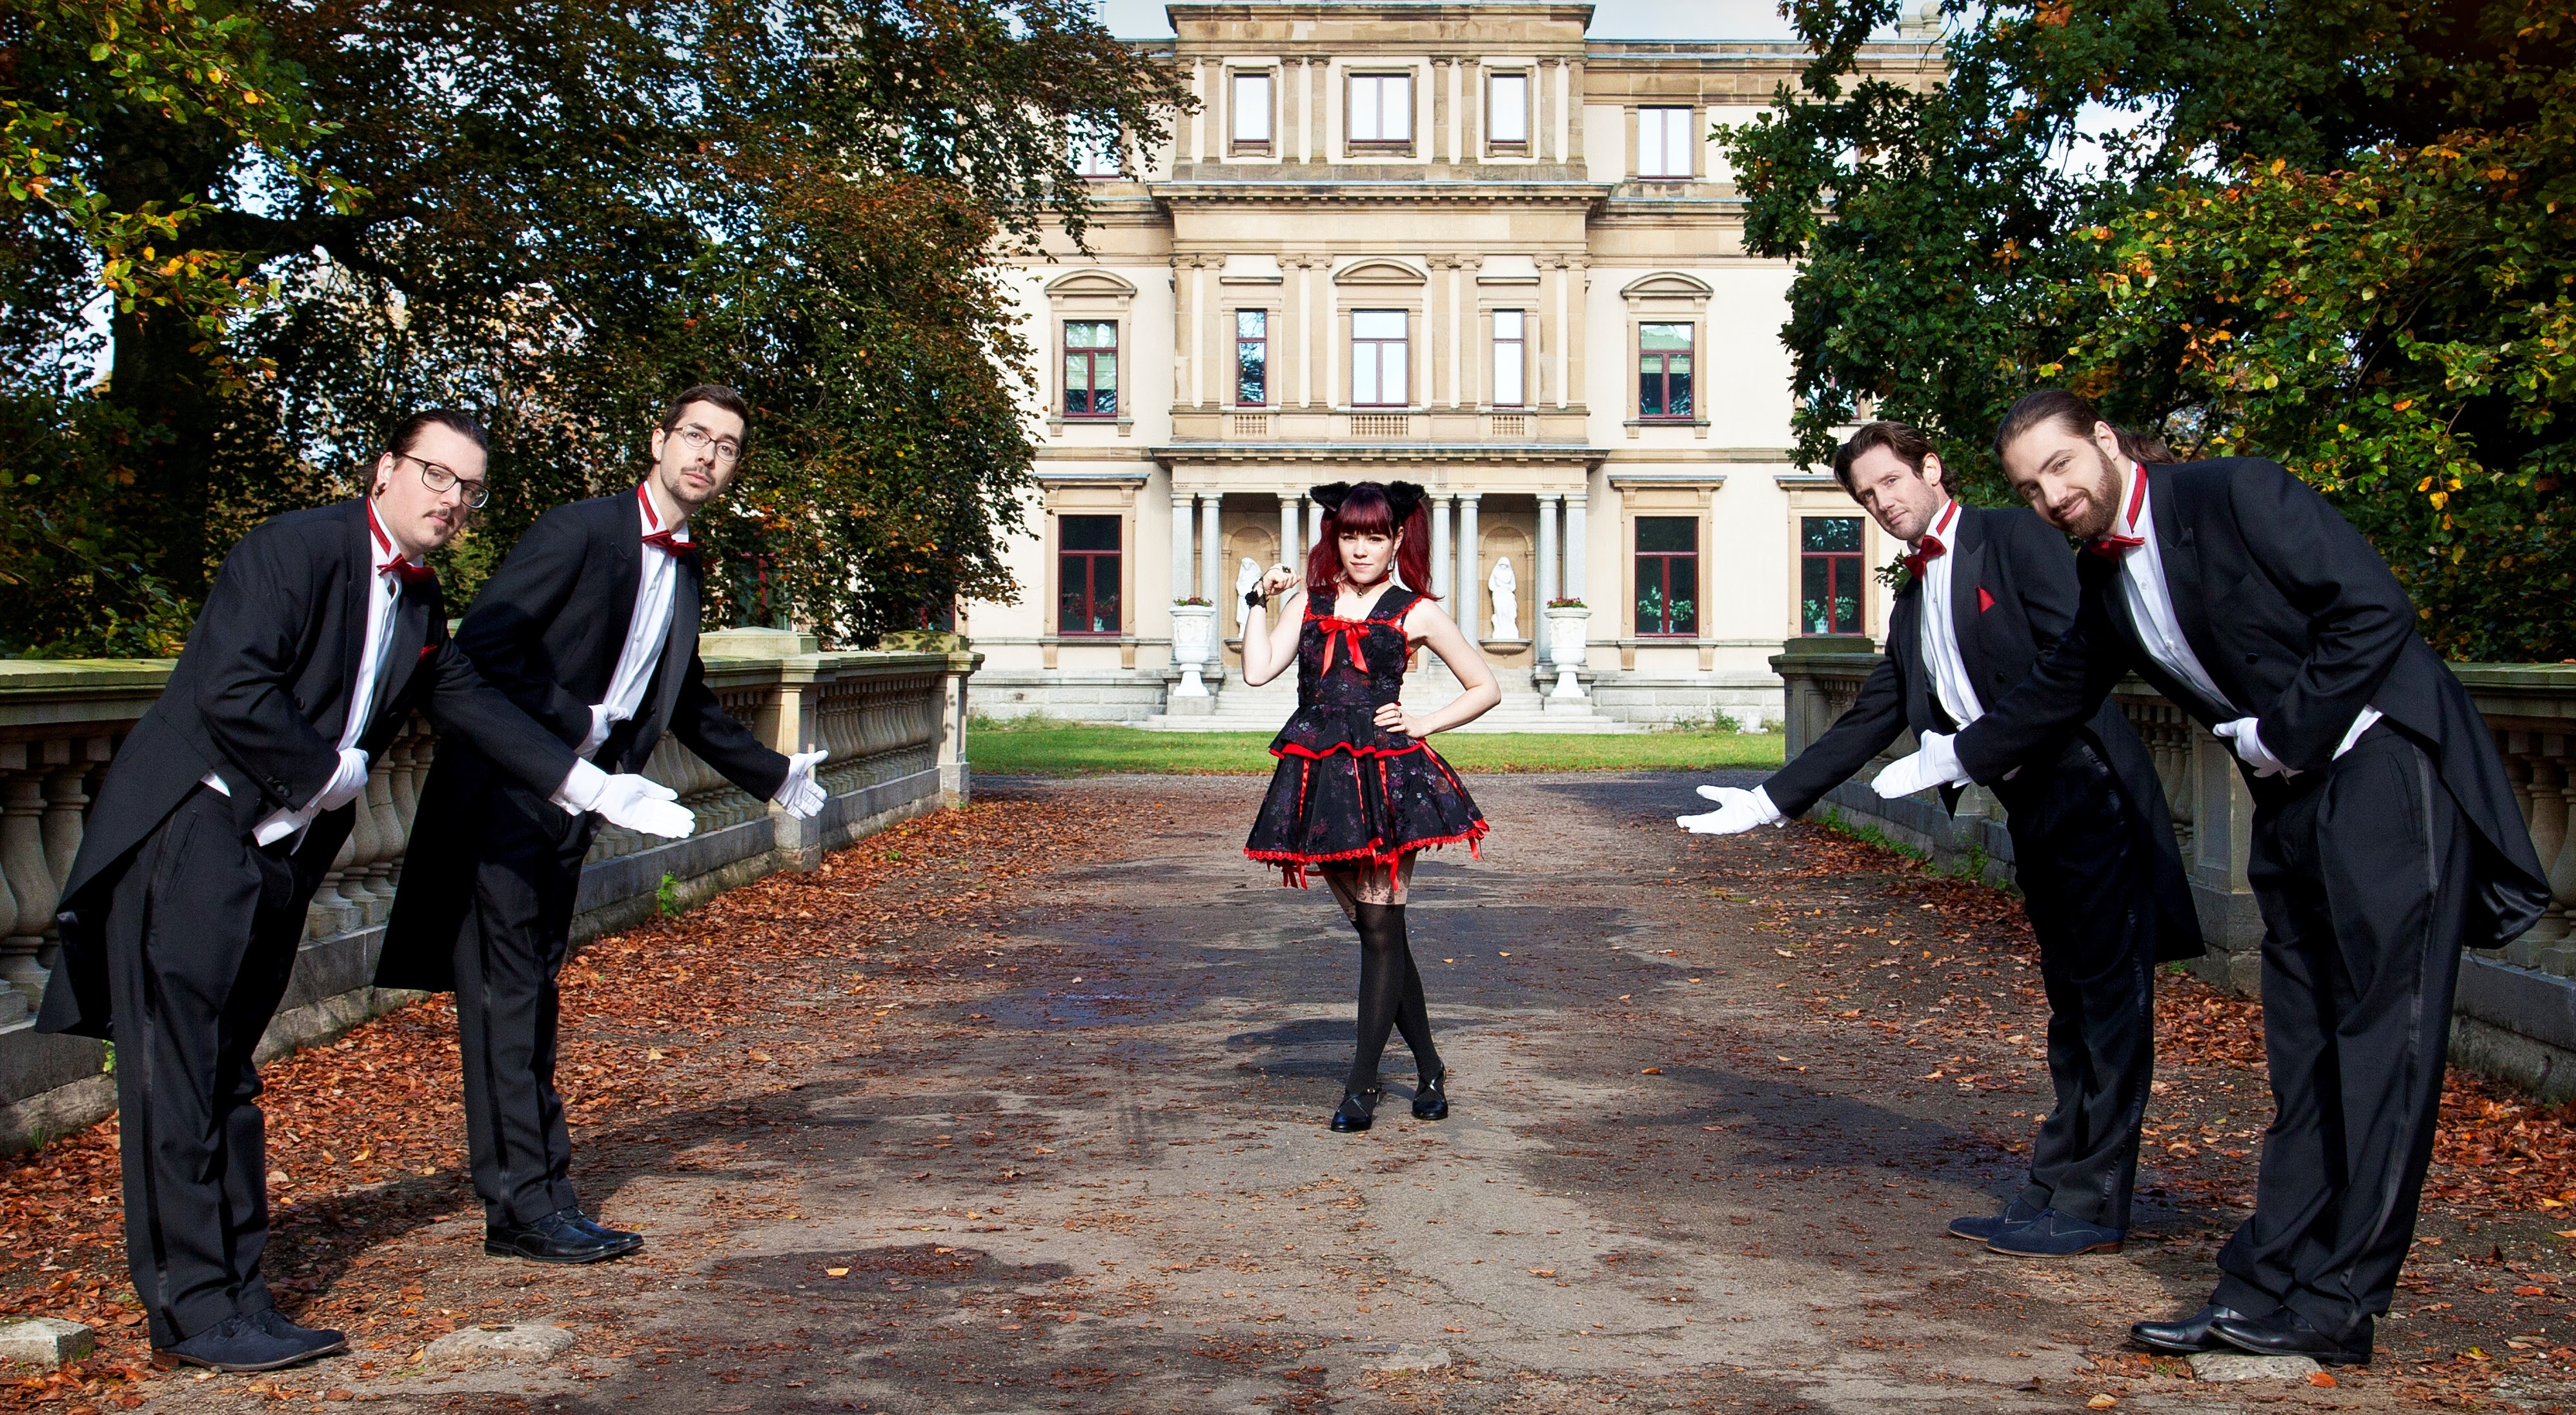 Abunai convention dress up town will perform at abunai 2018 tales of kitsunia on saturday in the evening theyre a dutch band whose repertoire includes idol music and solutioingenieria Image collections